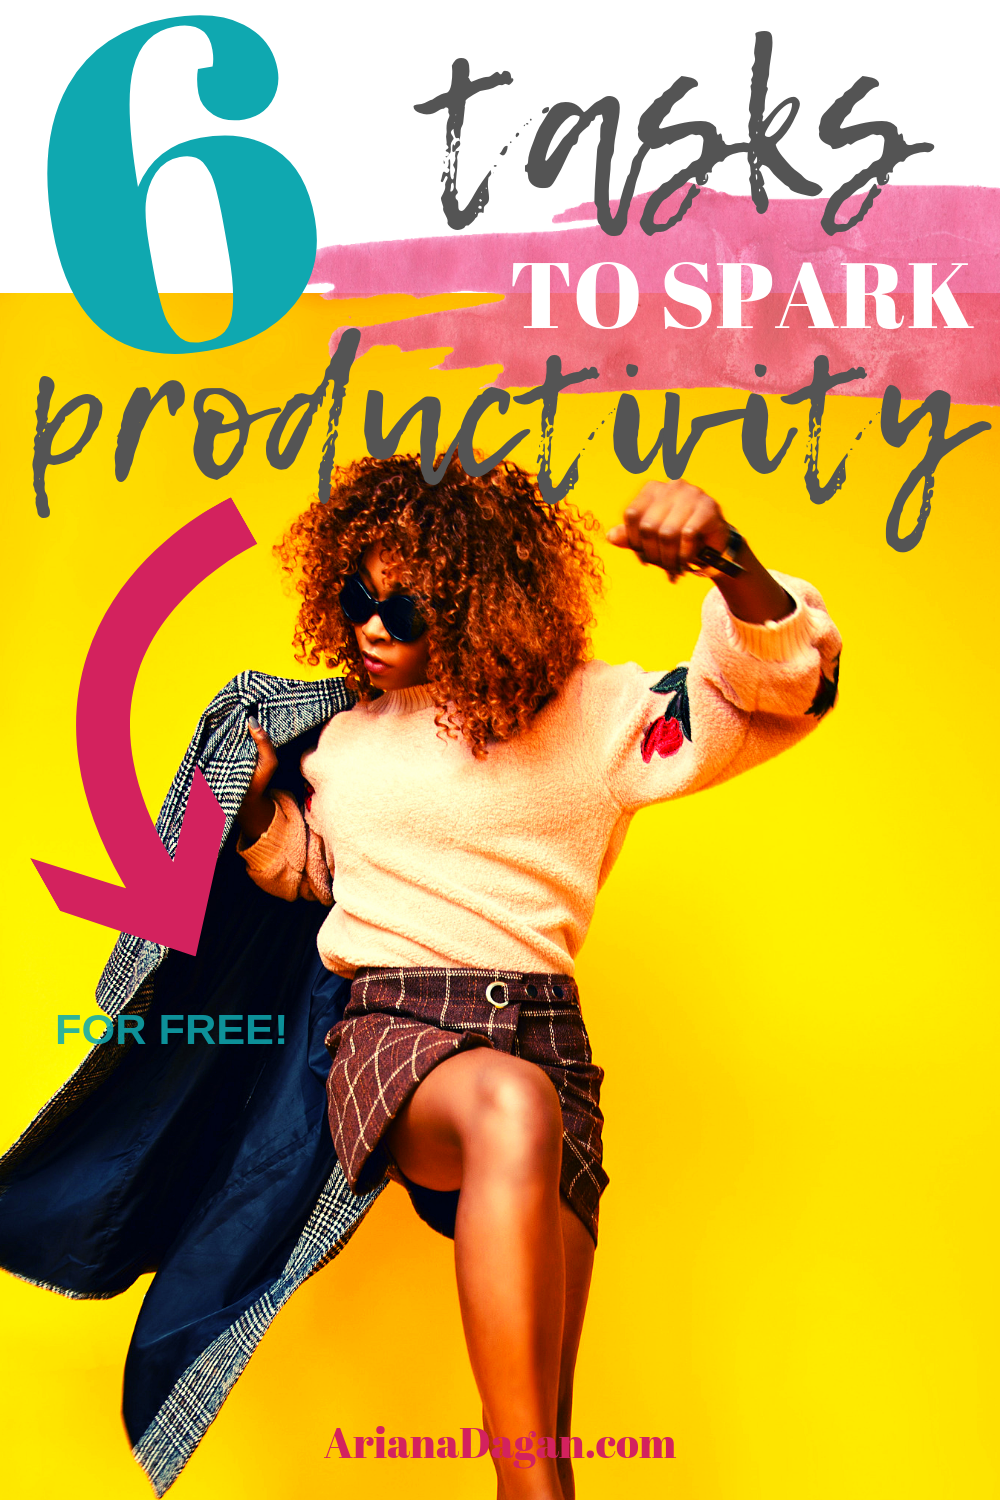 6 Tasks to Spark Productivity in the AM by ariana dagan